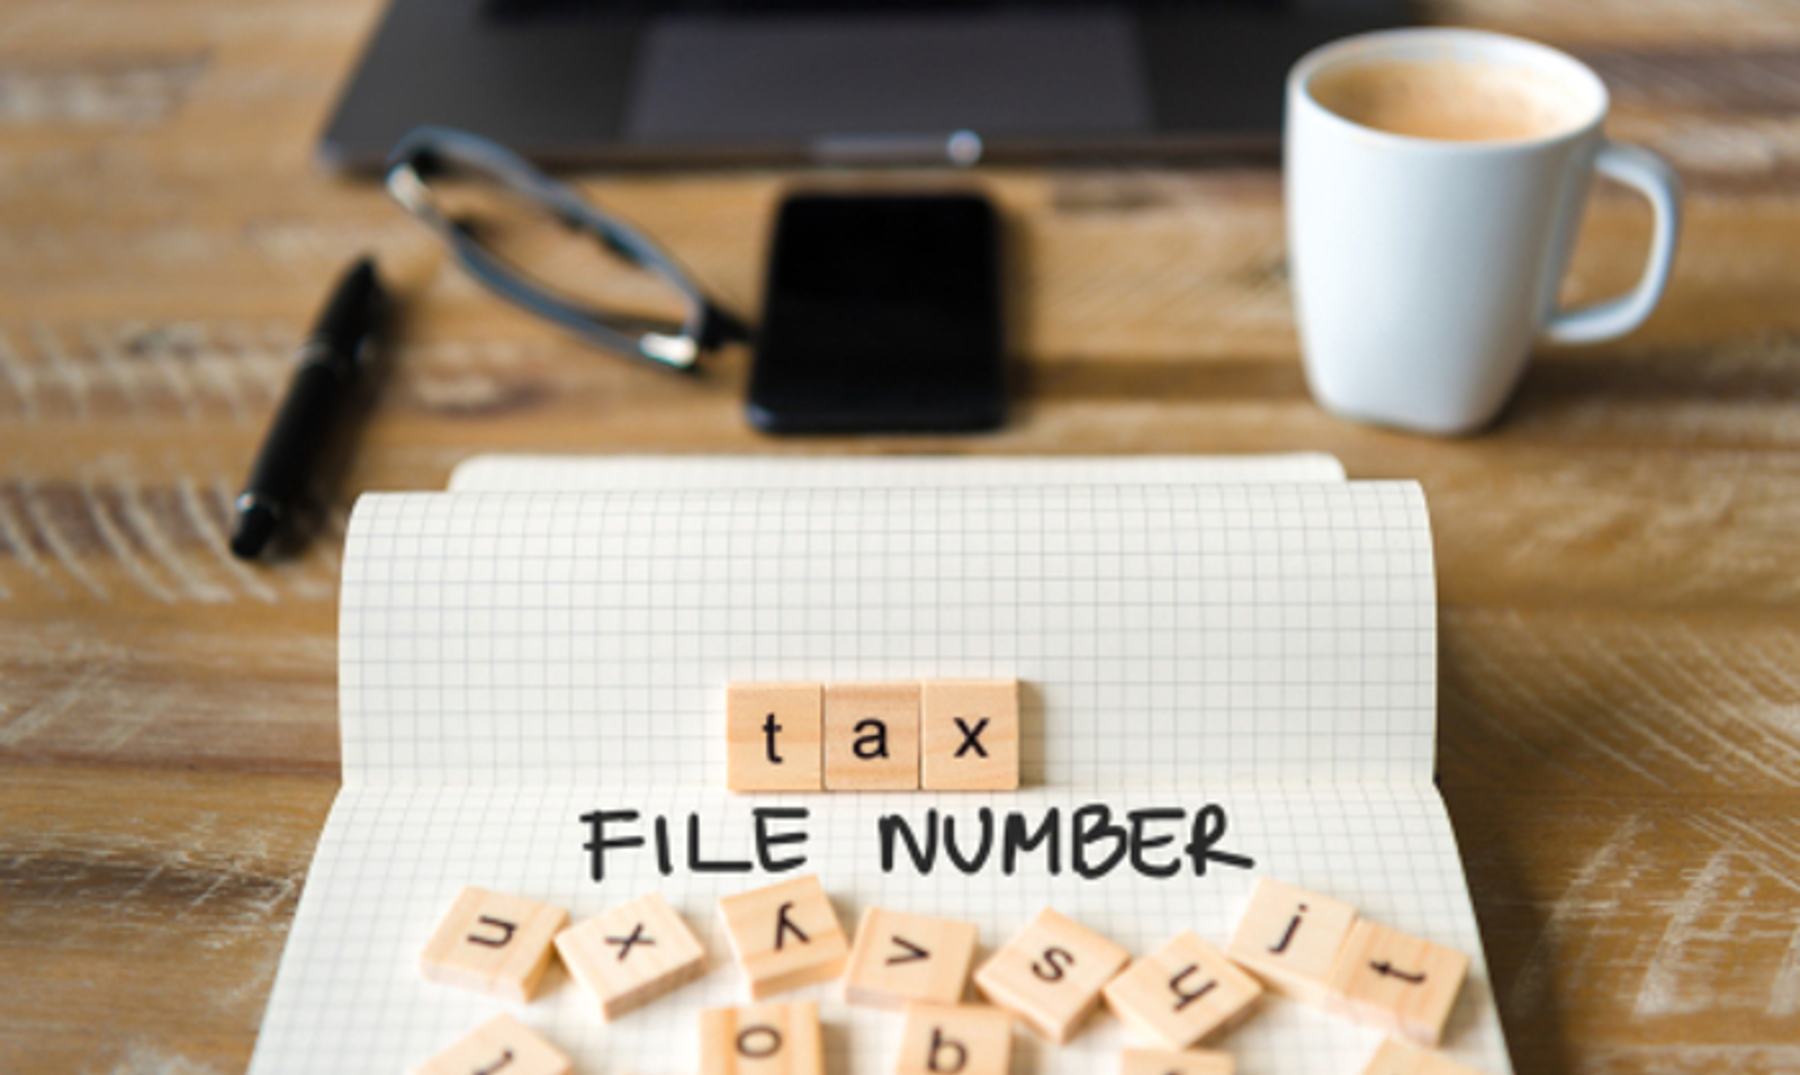 tax file number